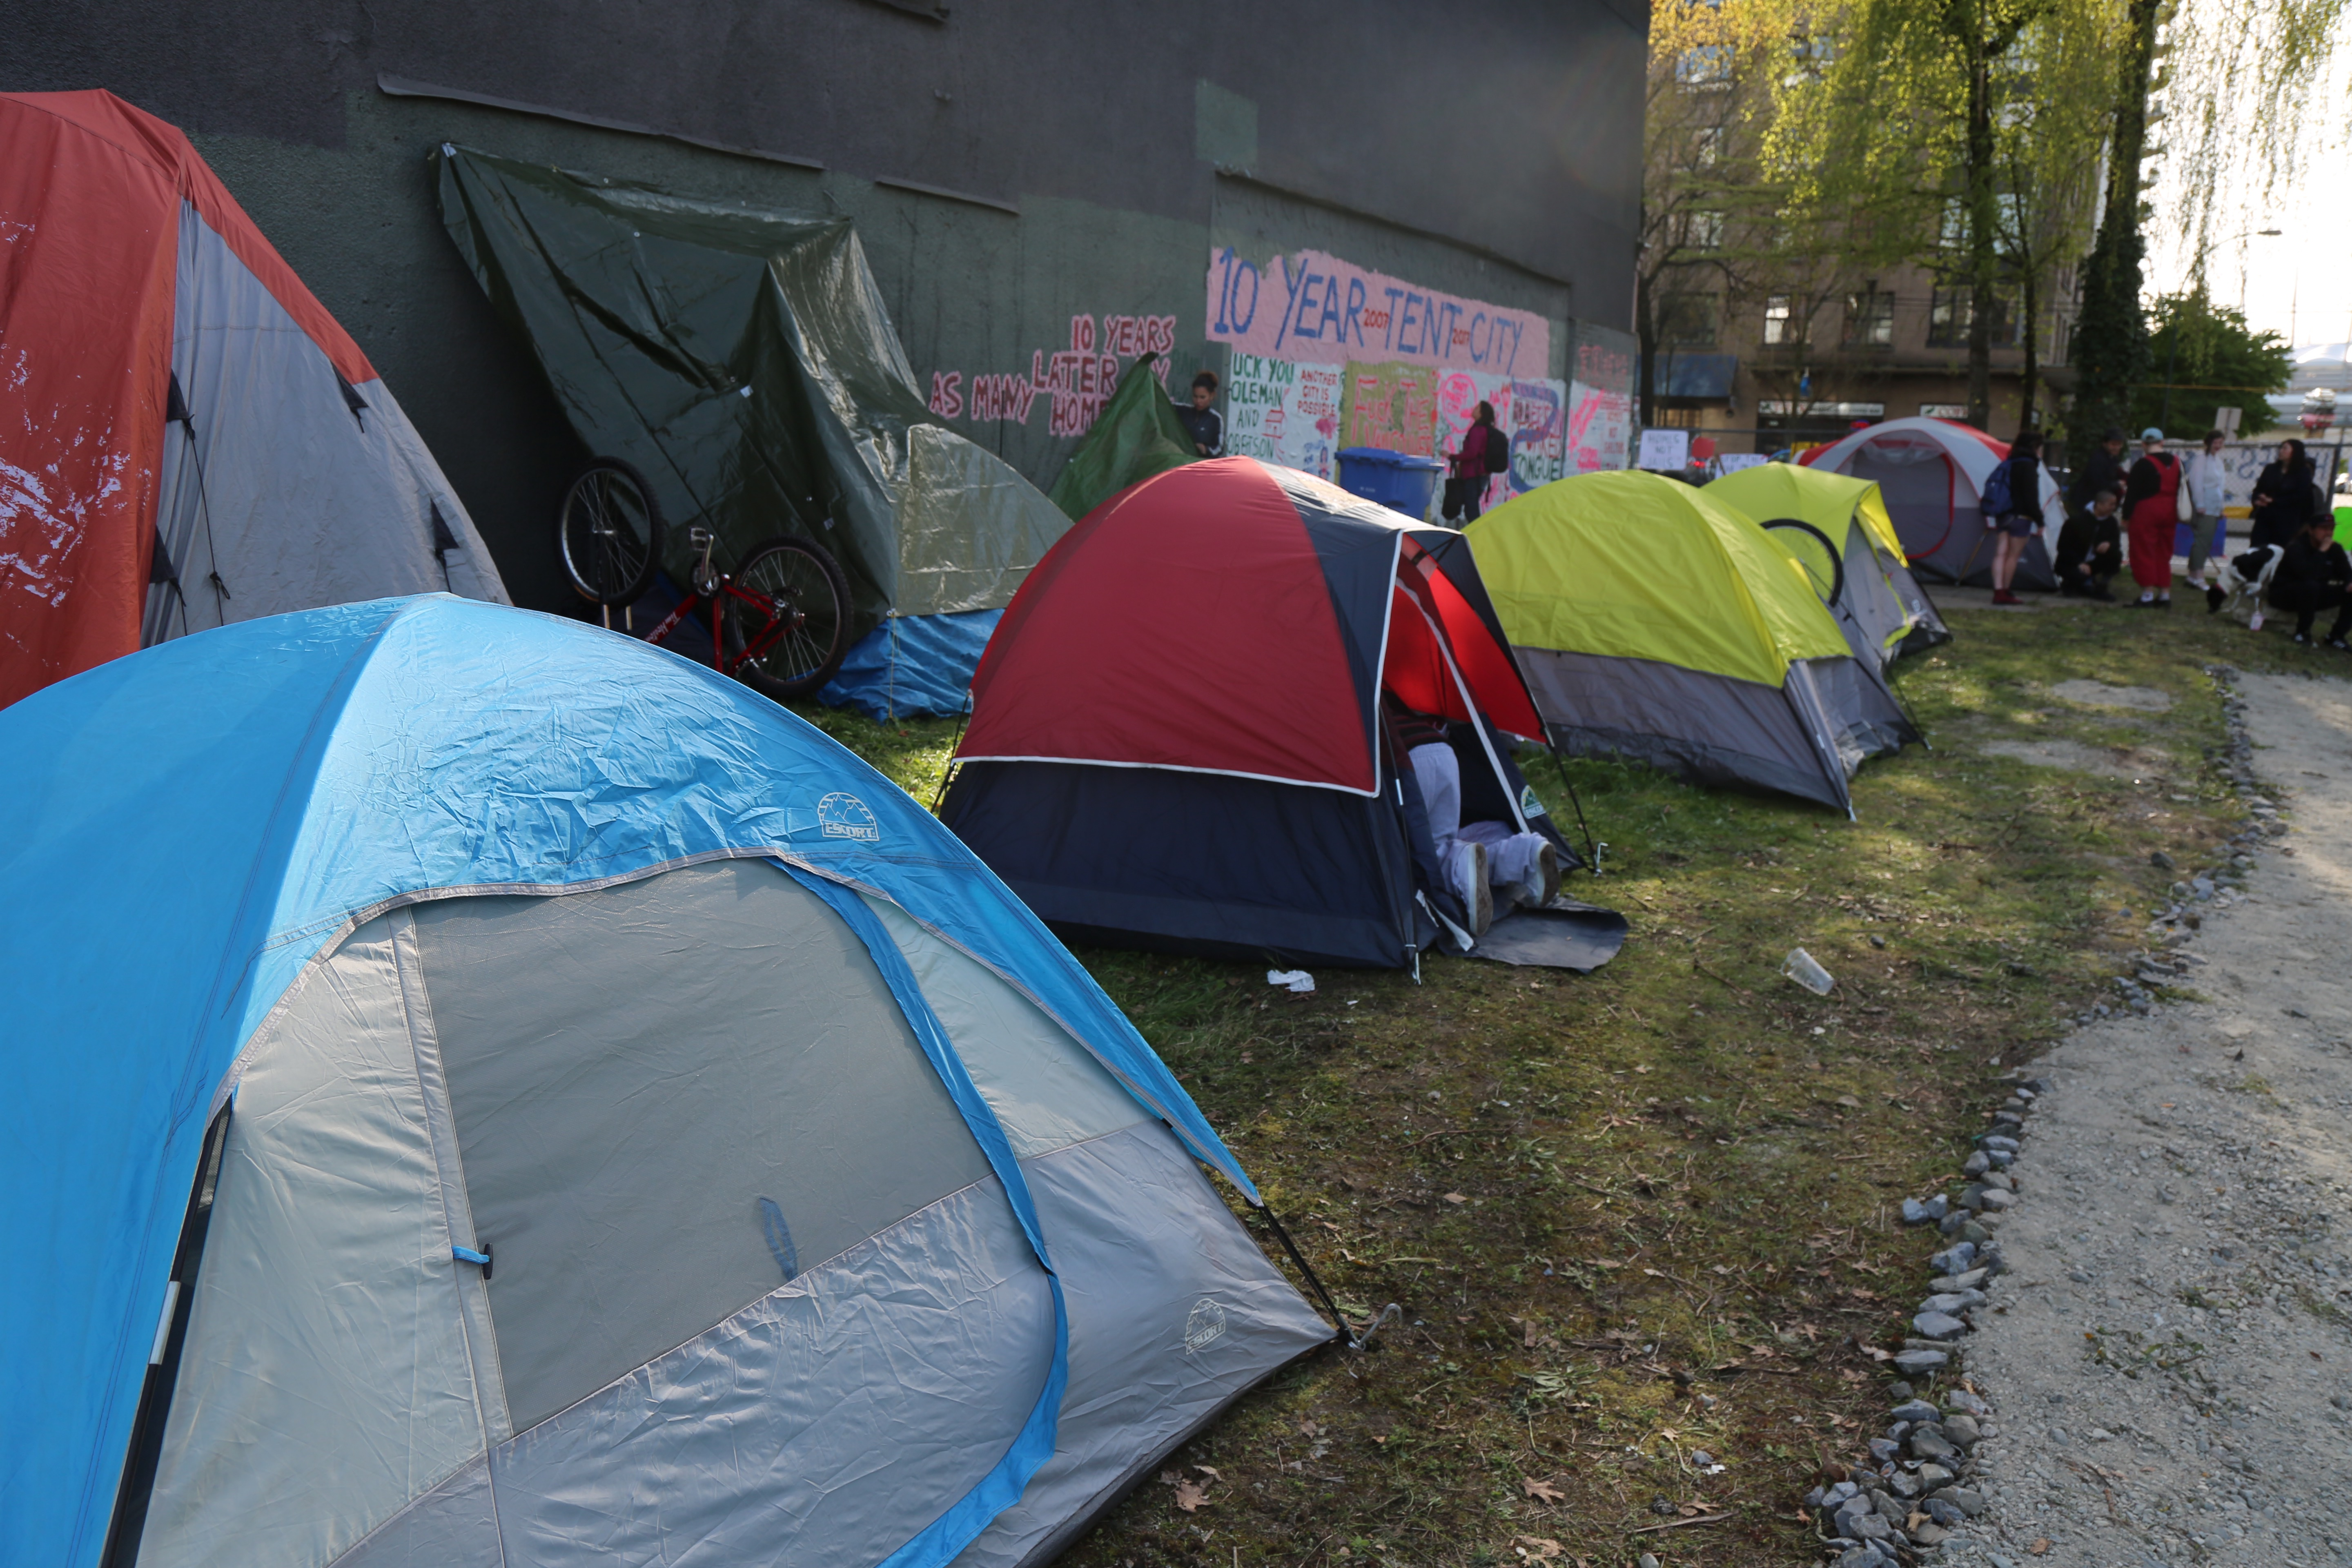 Four Principles That Can End Chronic Homelessness The Tyee - Chronic homelessness across the us map